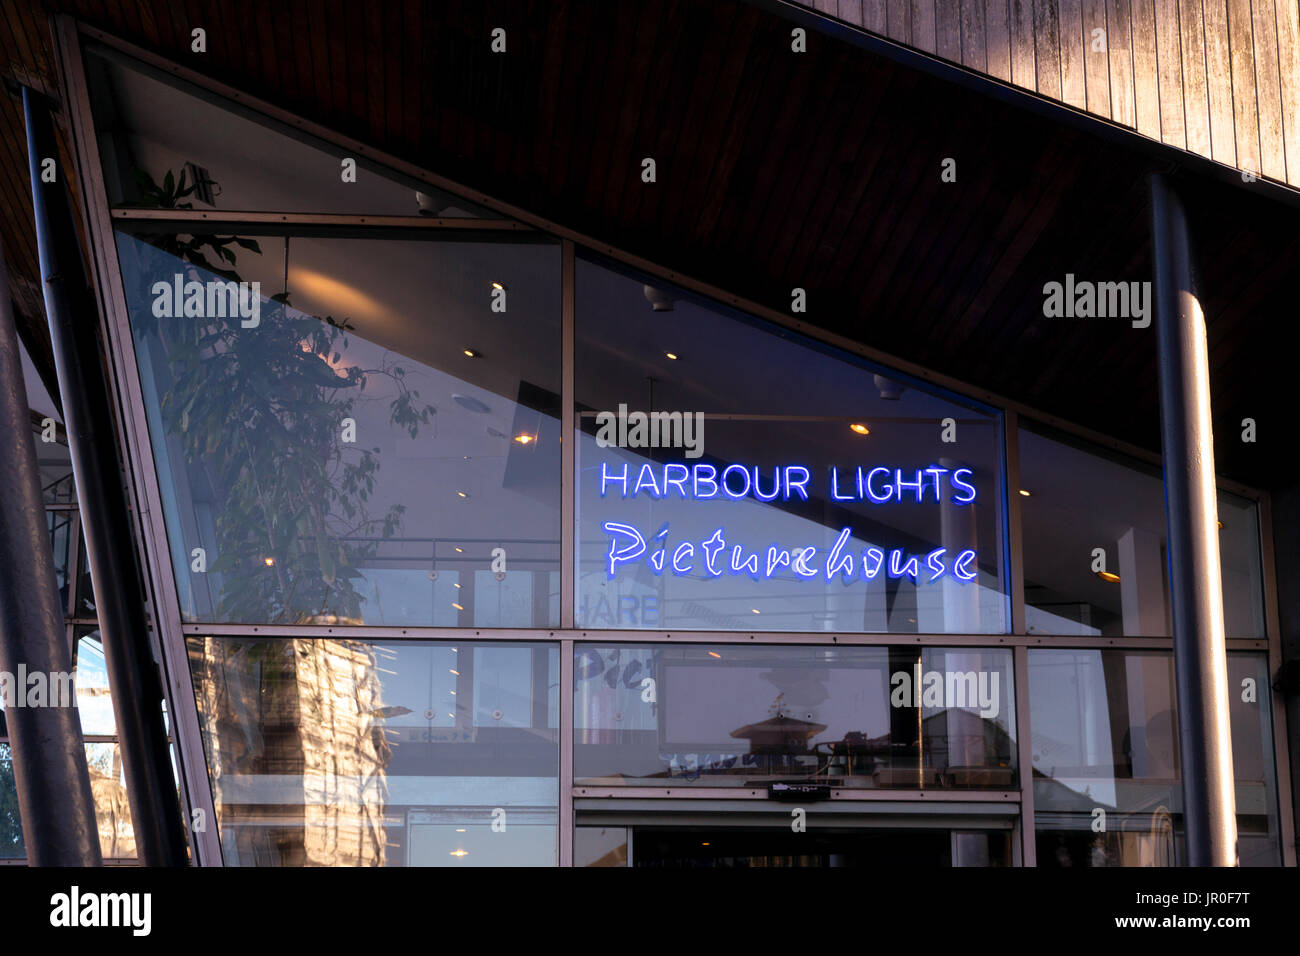 The Harbour Lights Picturehouse cinema in Ocean Village in Southampton, England, UK - Stock Image